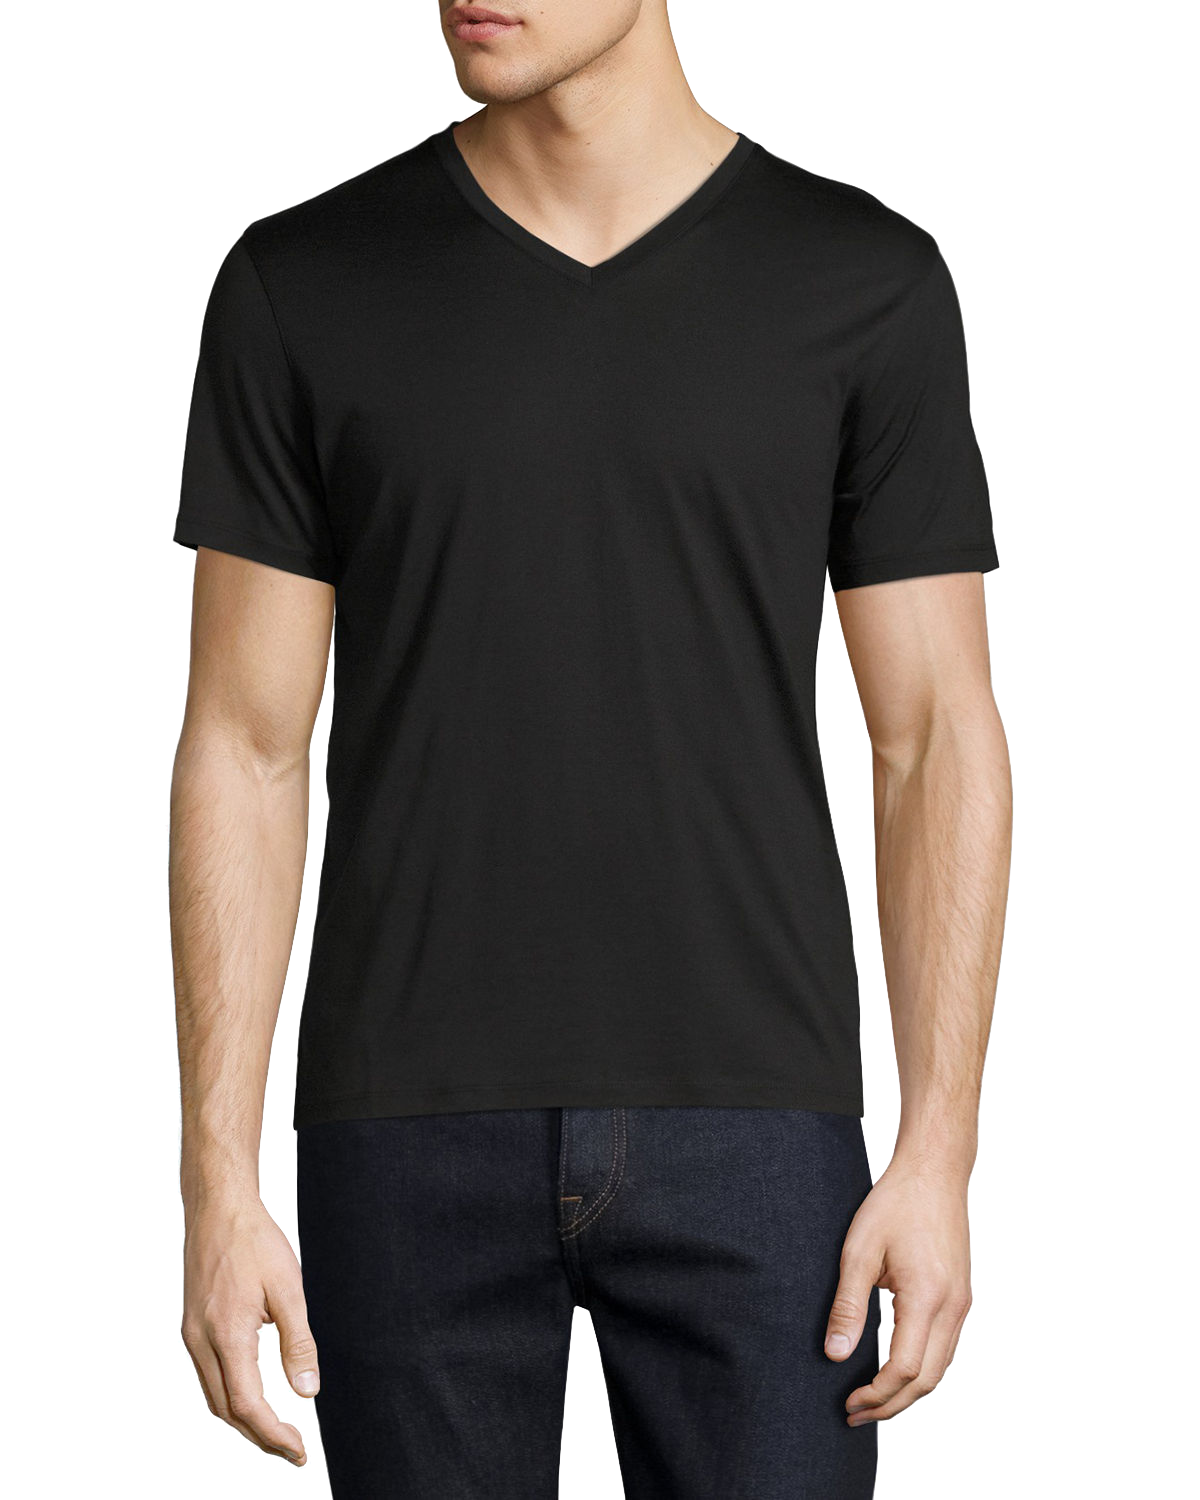 theory mens black vneck